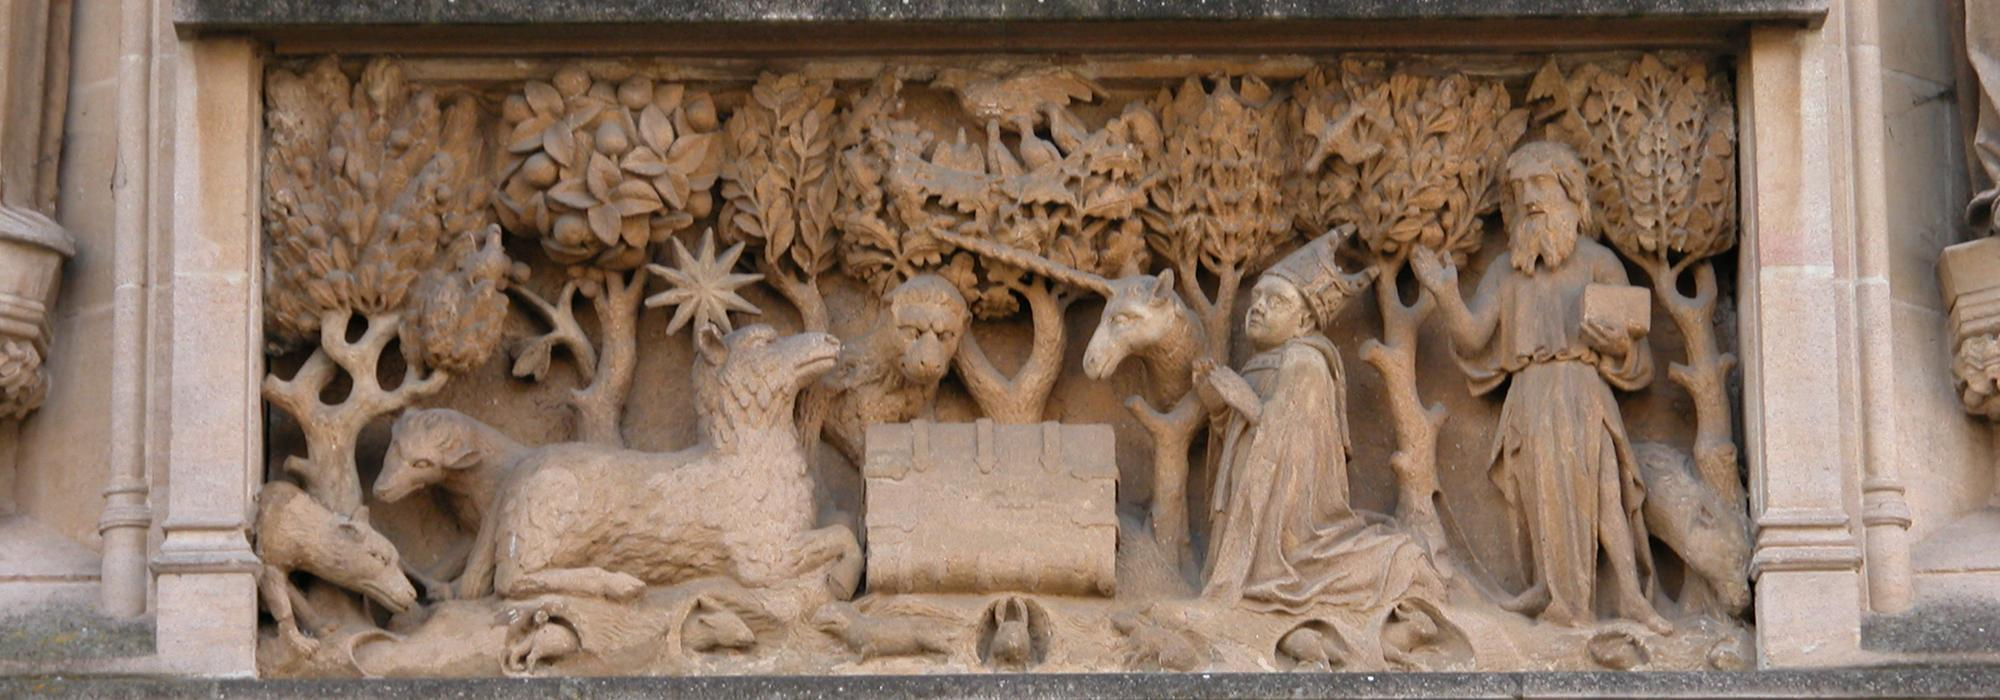 Central stone panel above the entrance to the College; it represents a book with the Agnus Dei on one side and St John the Baptist and the founder on the other side set in a landscape background with various animals.